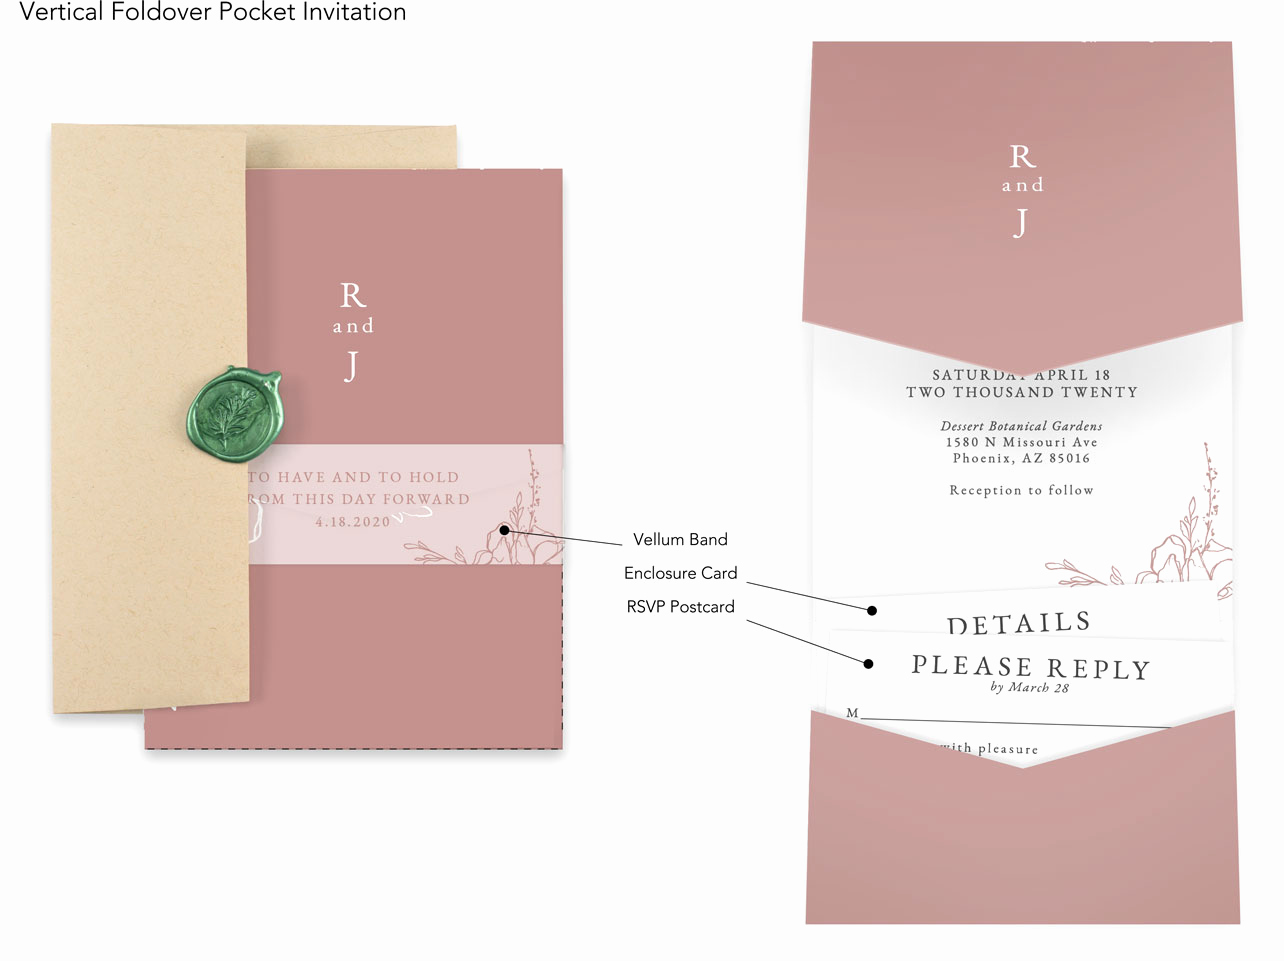 Wedding Invitation Details Card Inspirational Wedding Invitations